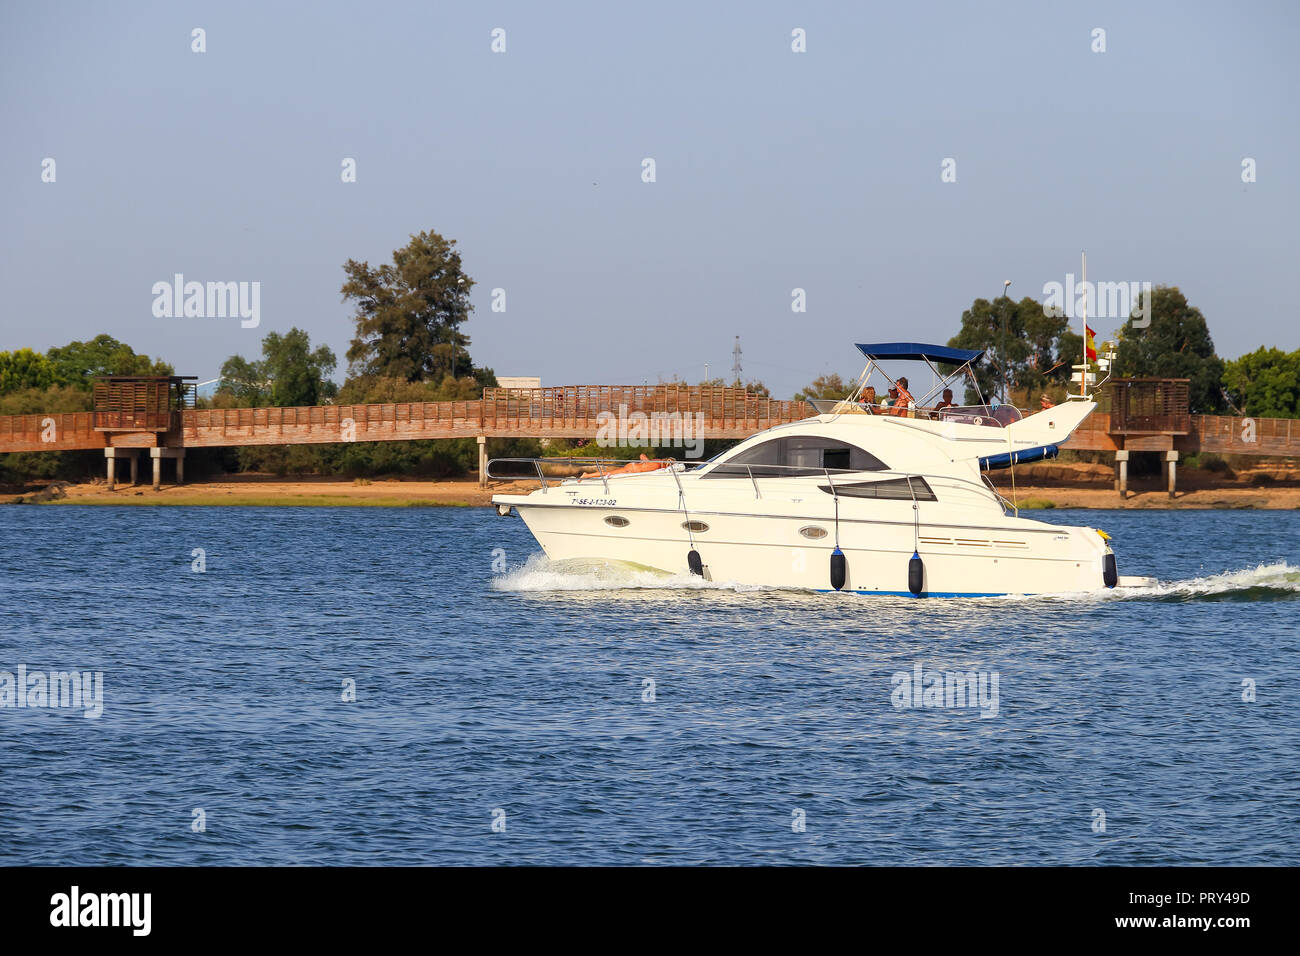 Huelva, Spain - July 16, 2017: Unidentified people enjoy activities on motor boat Punta Umbria beach - Stock Image